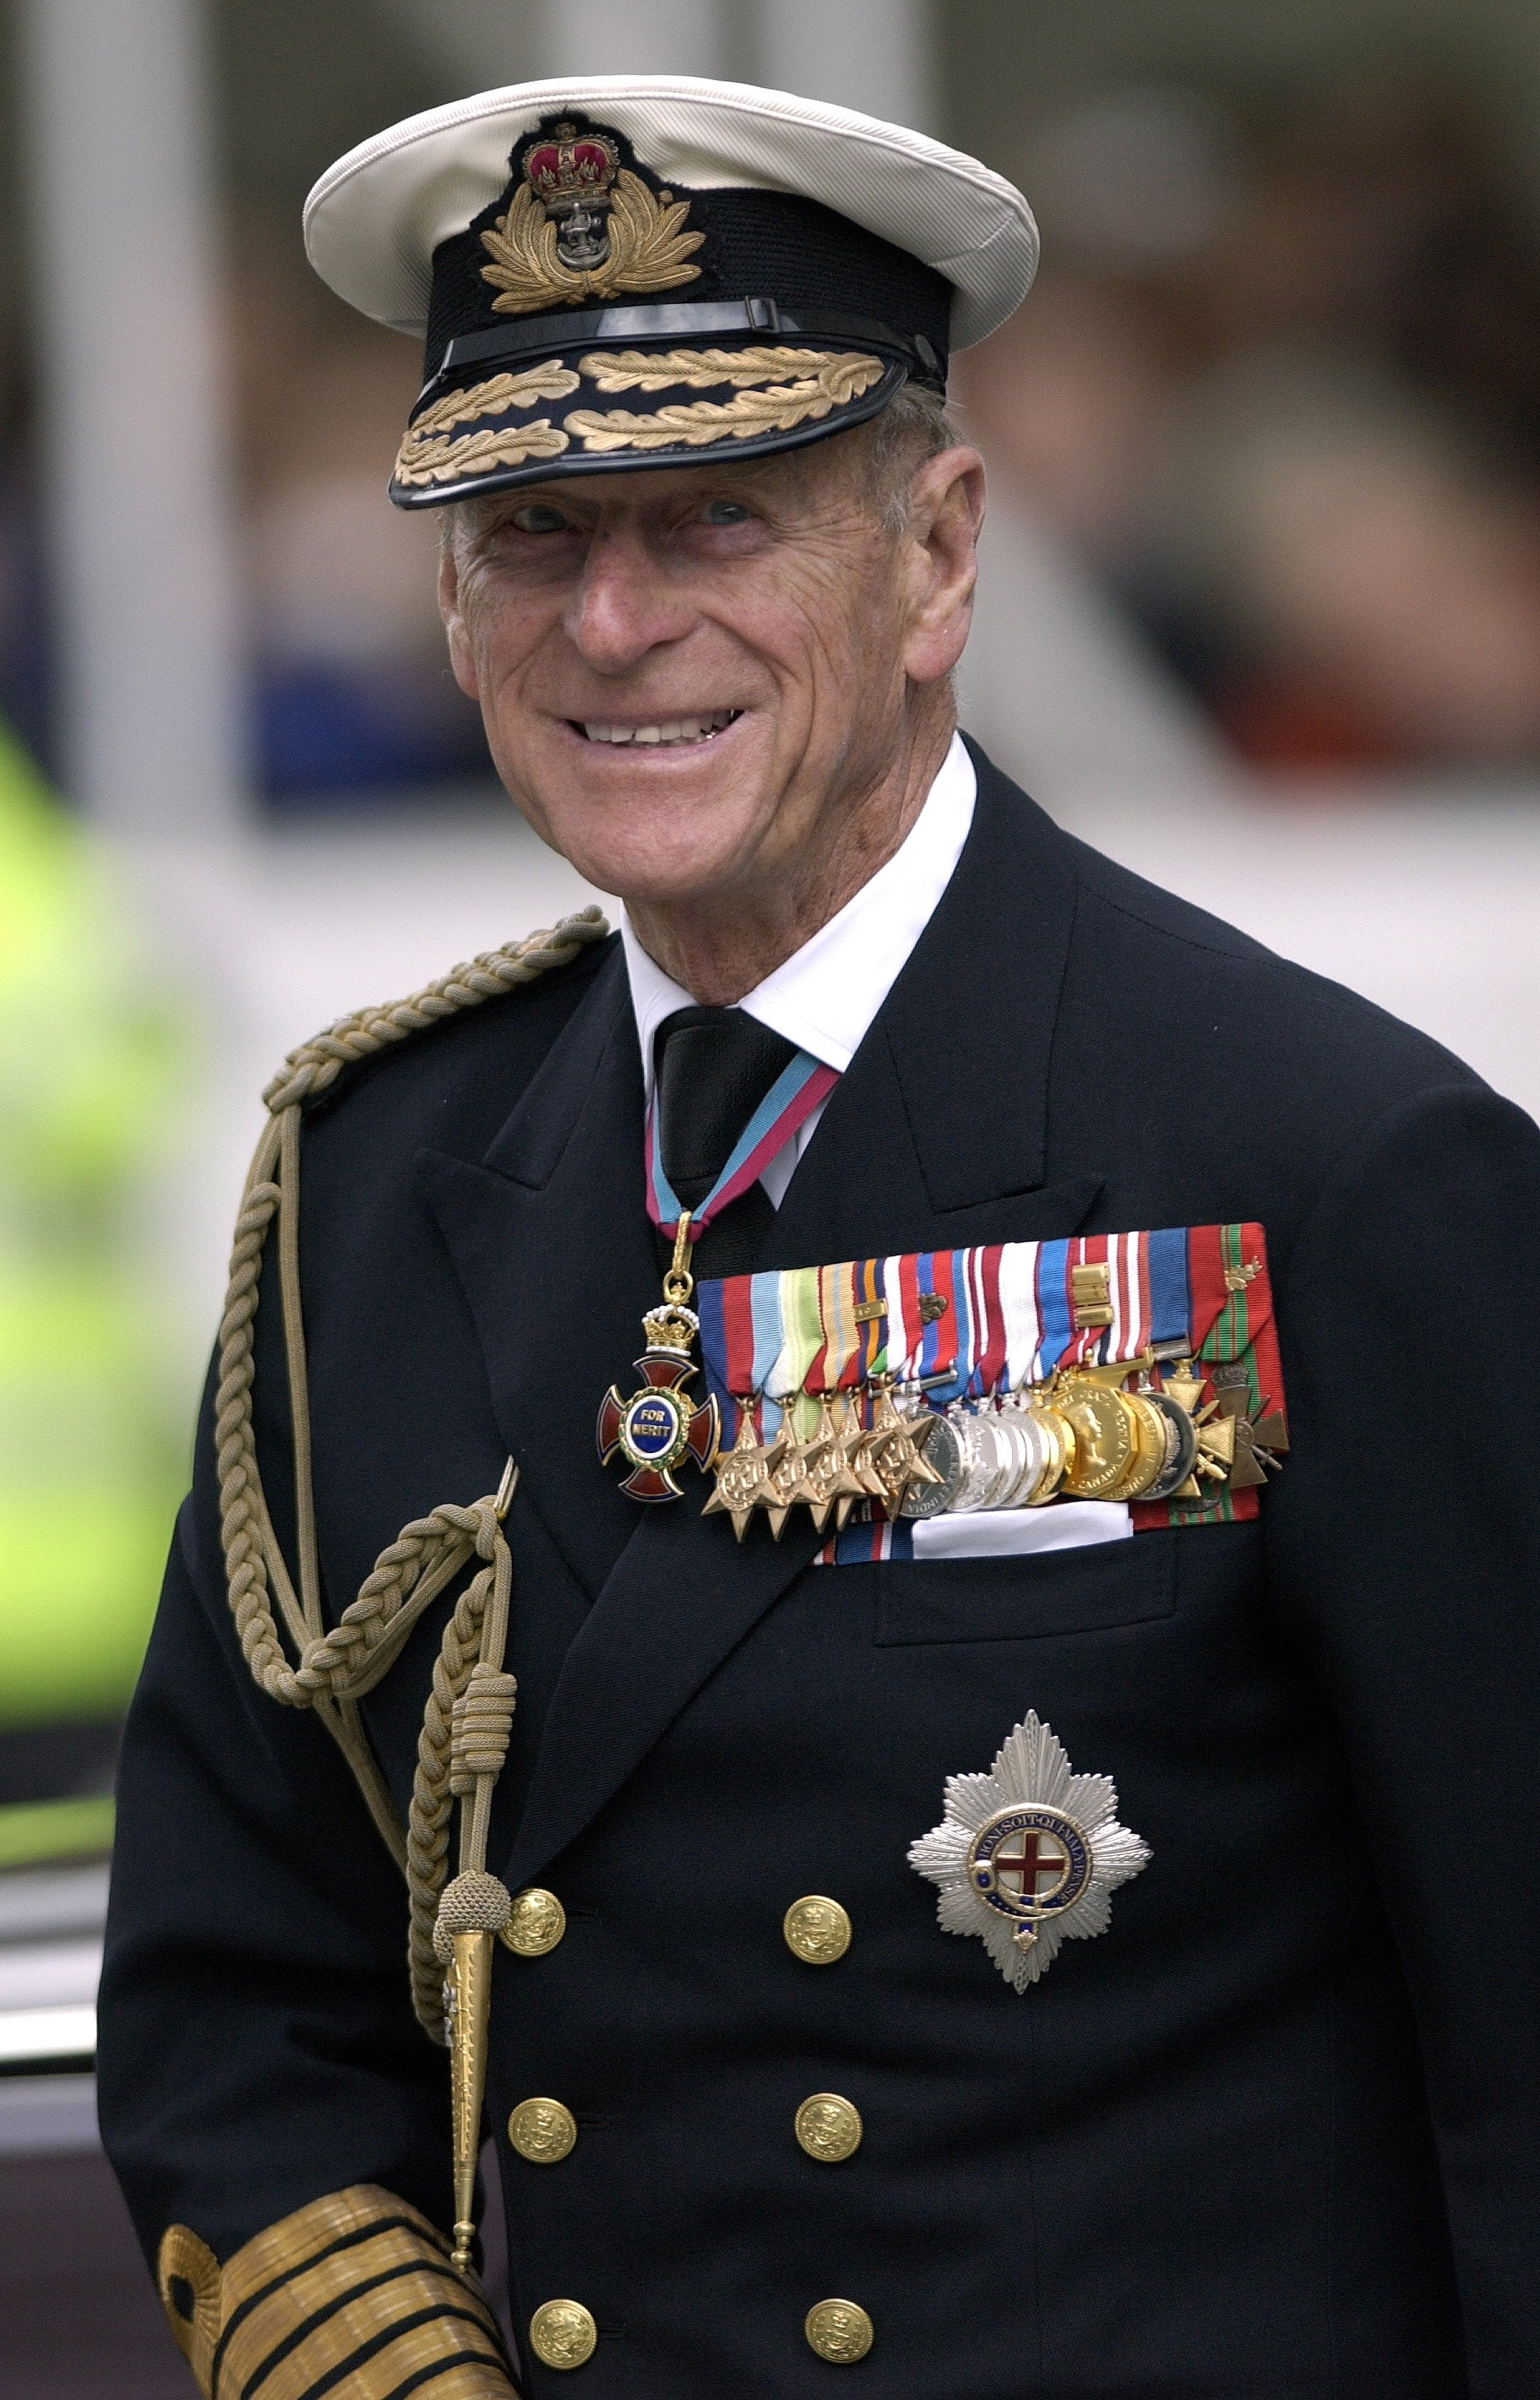 Prince Philip in military uniform as Admiral Of The Fleet in the Royal Navy  | Photo: Getty Images